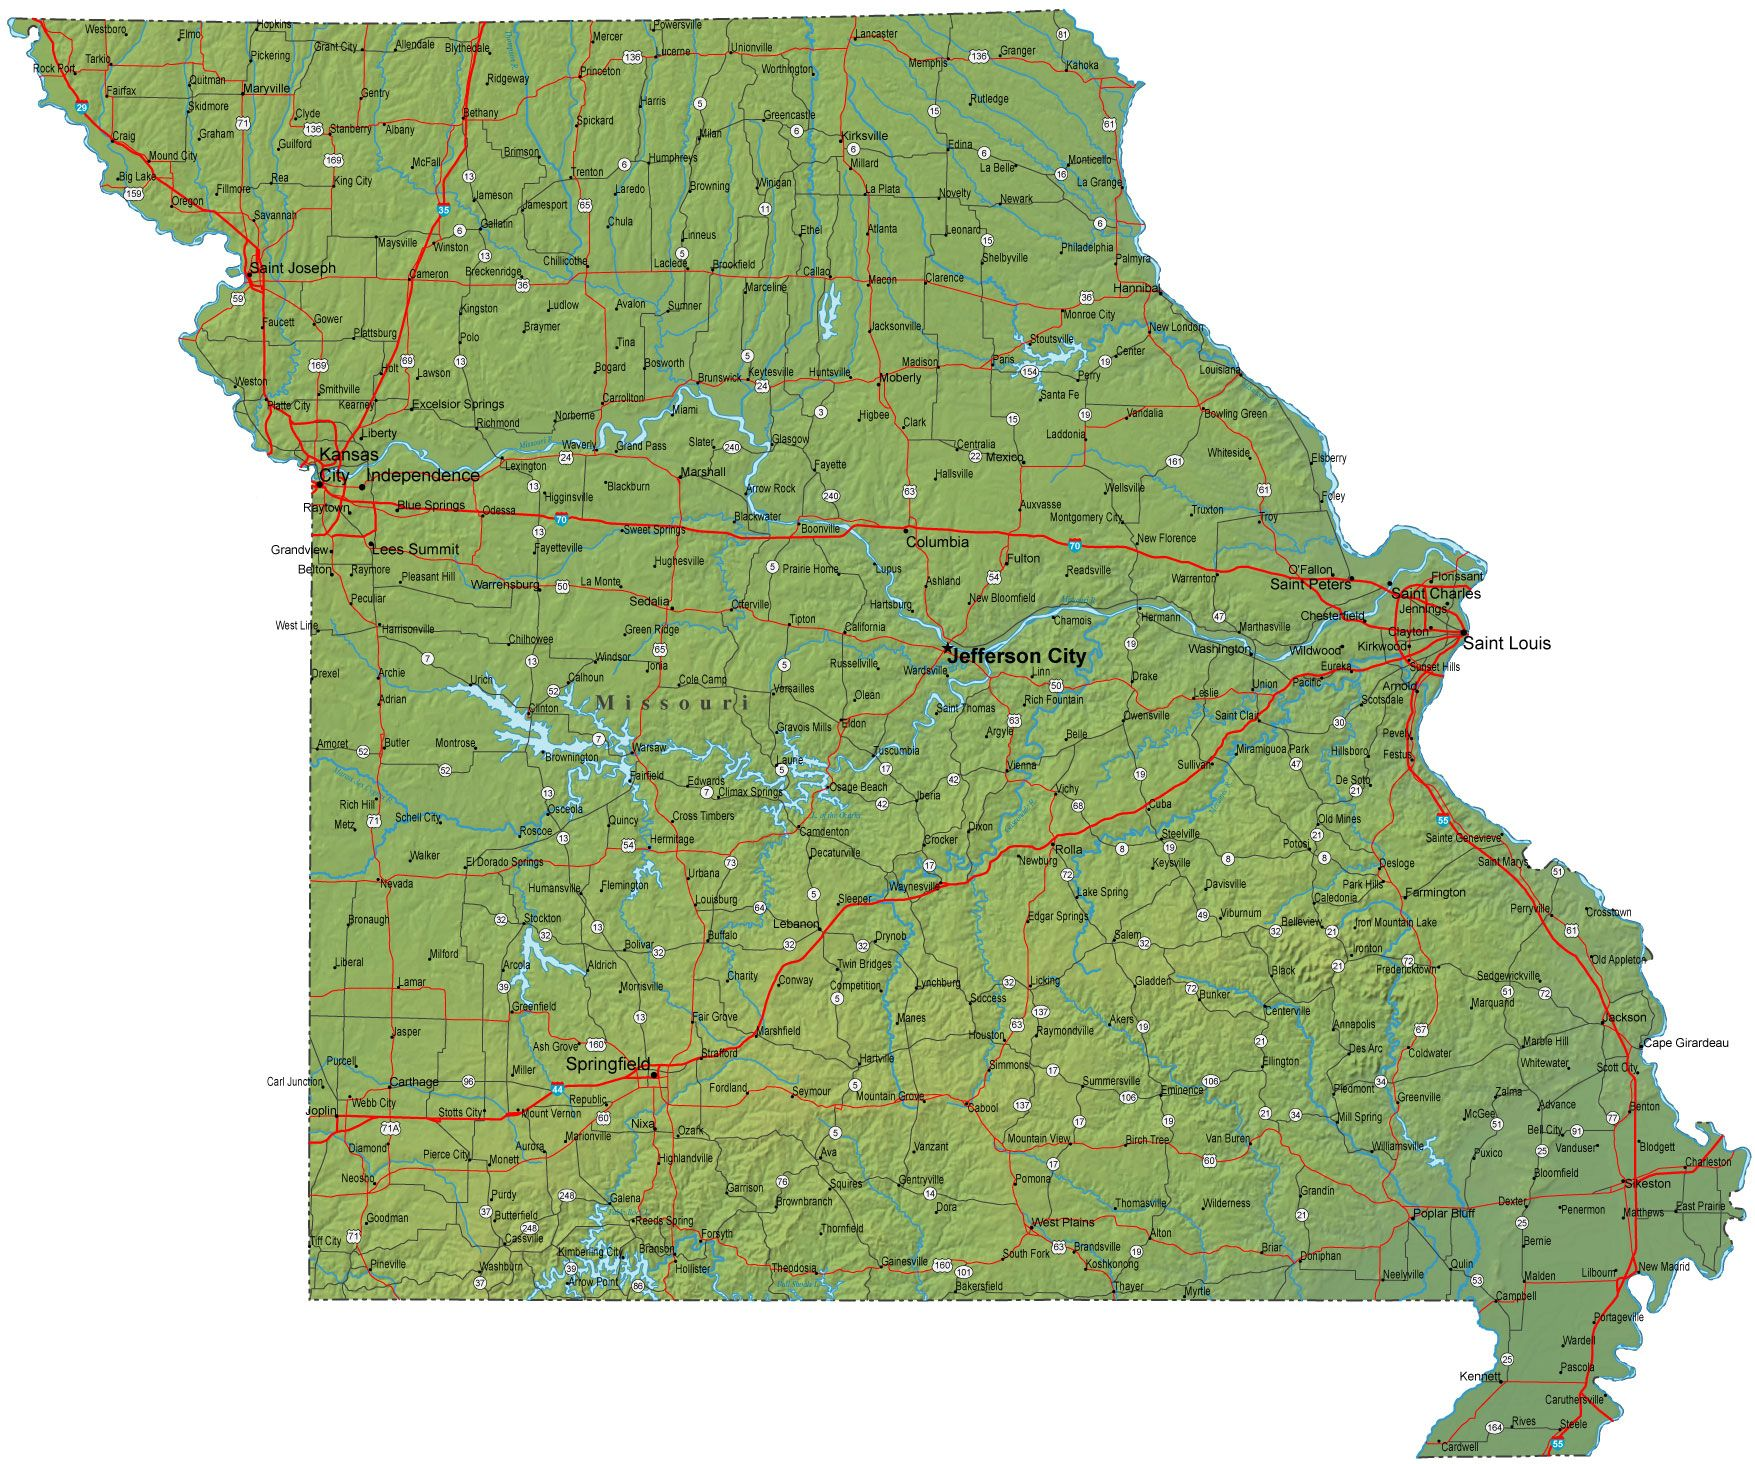 Map of Missouri - - Yahoo Image Search Results